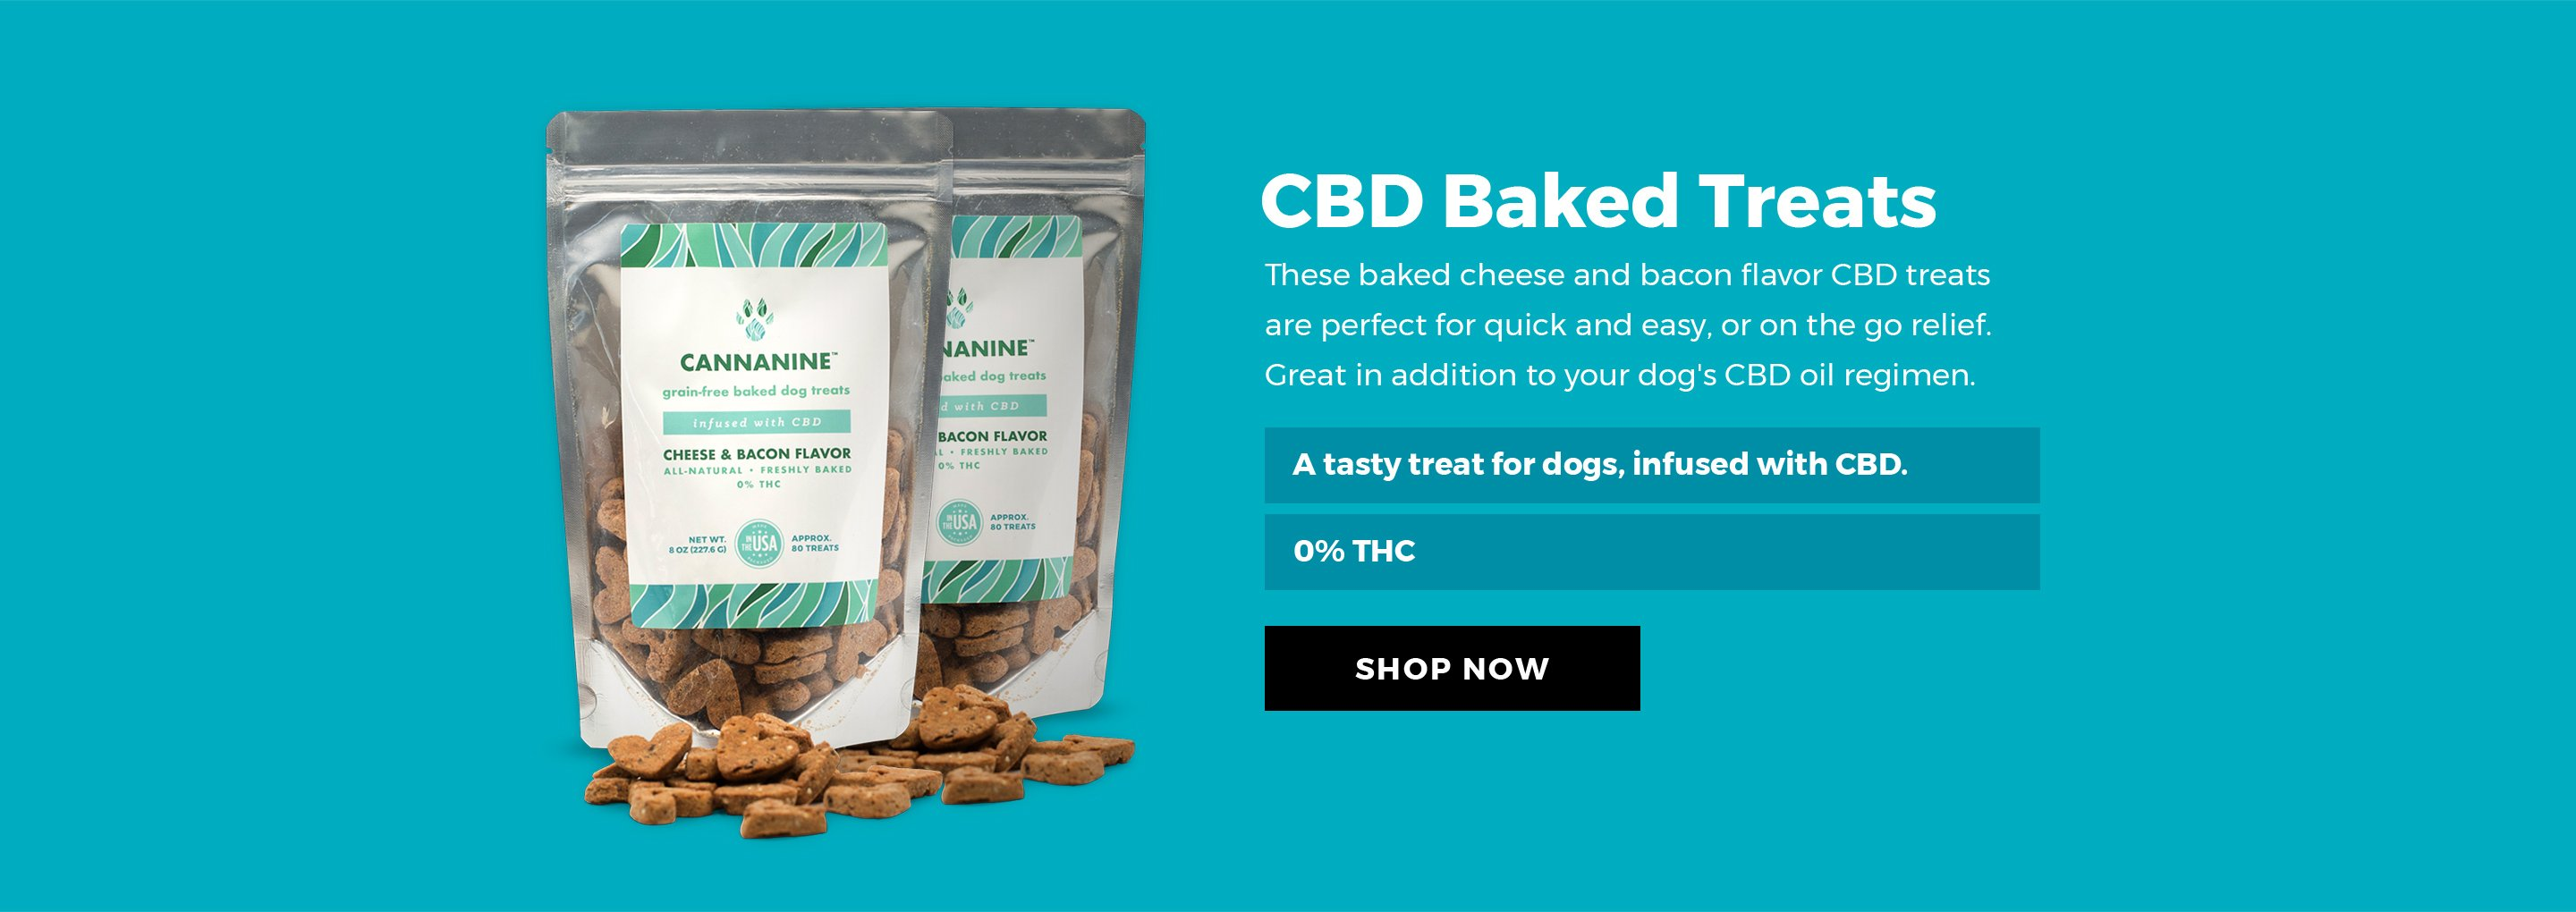 CBD Baked Treats - These based cheese and bacon flavor CBD treats are perfect for quick and easy, or on the go relief. Great in addition to your dog's CBD oil regimen.